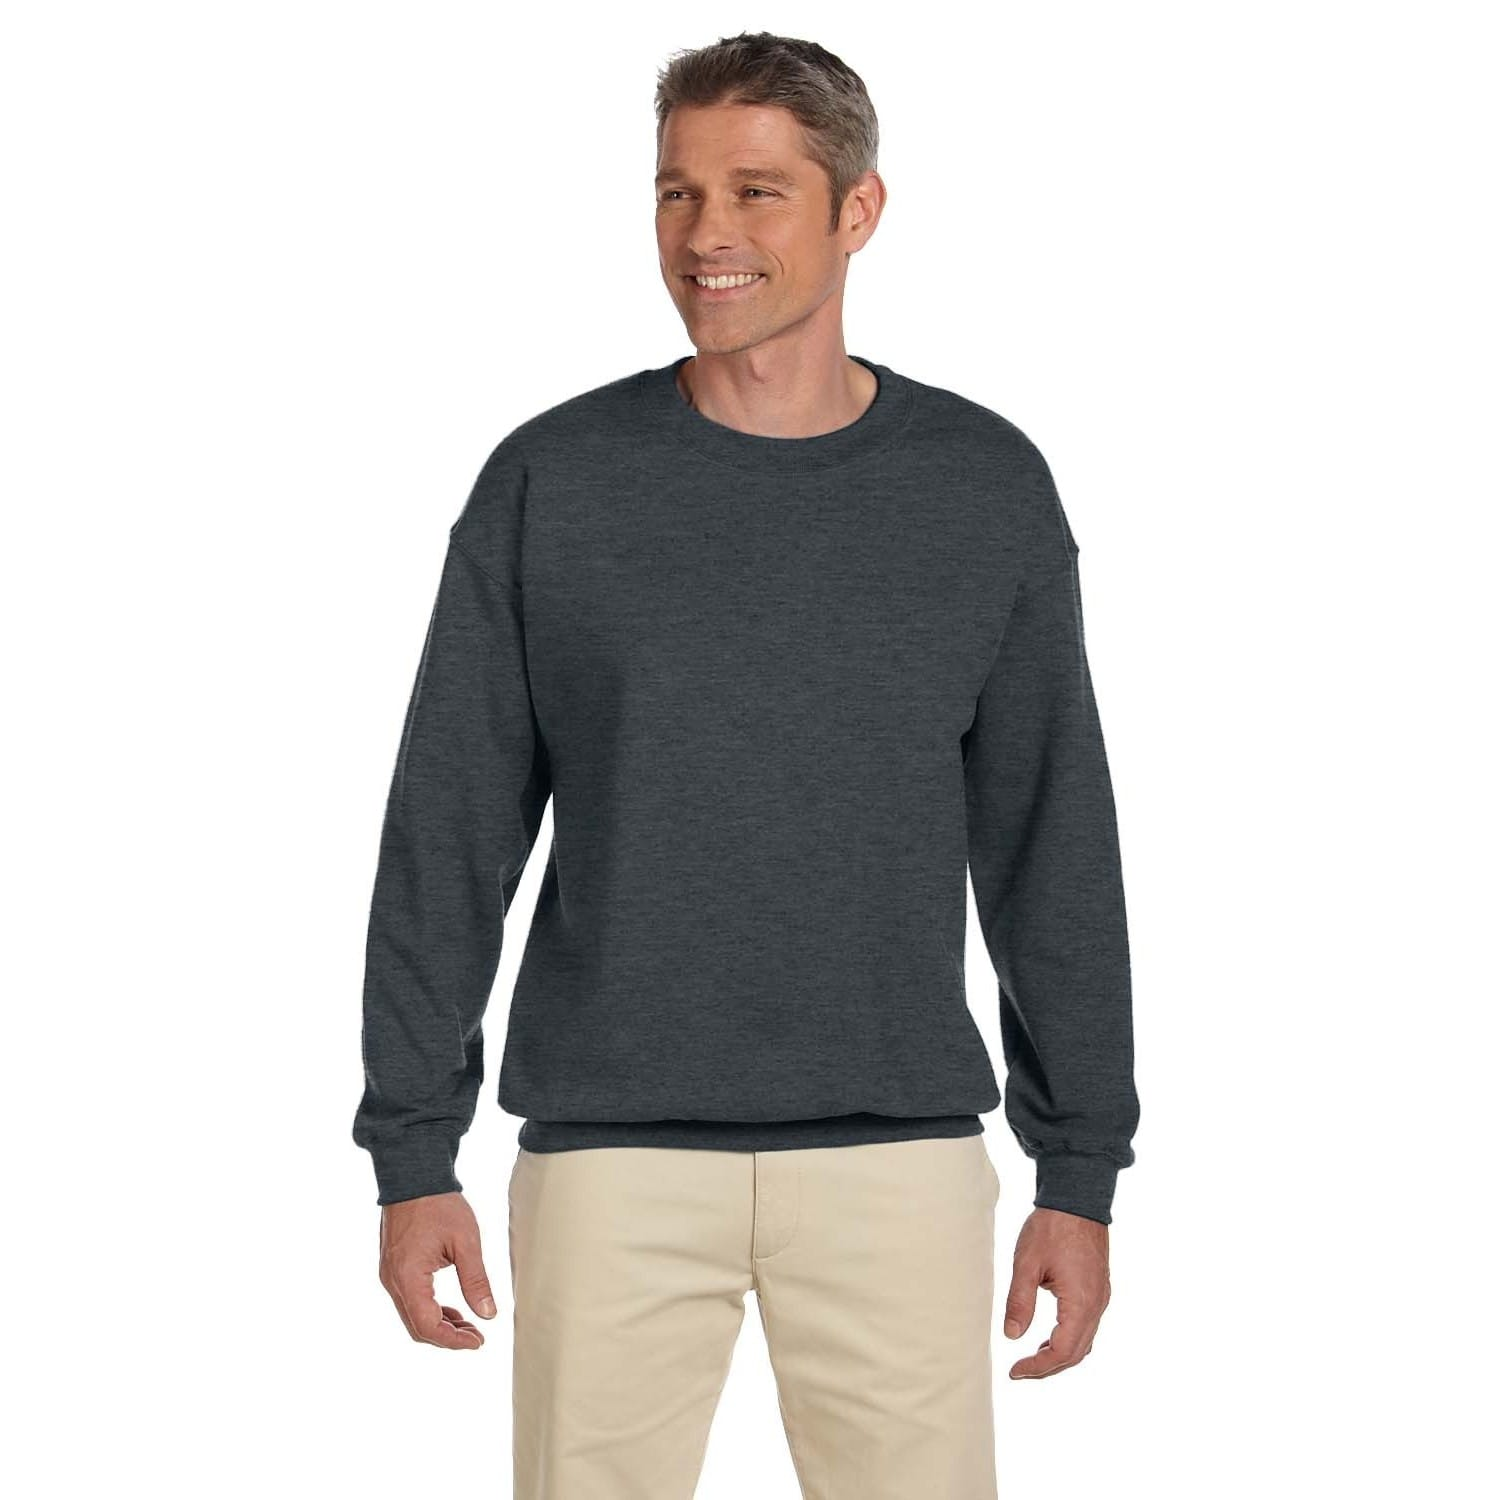 5ed2802fb Shop Men's Super Sweats Black Heather 50/50 Nublend Fleece Big and Tall  Crewneck Sweater - On Sale - Free Shipping On Orders Over $45 - Overstock -  12450218